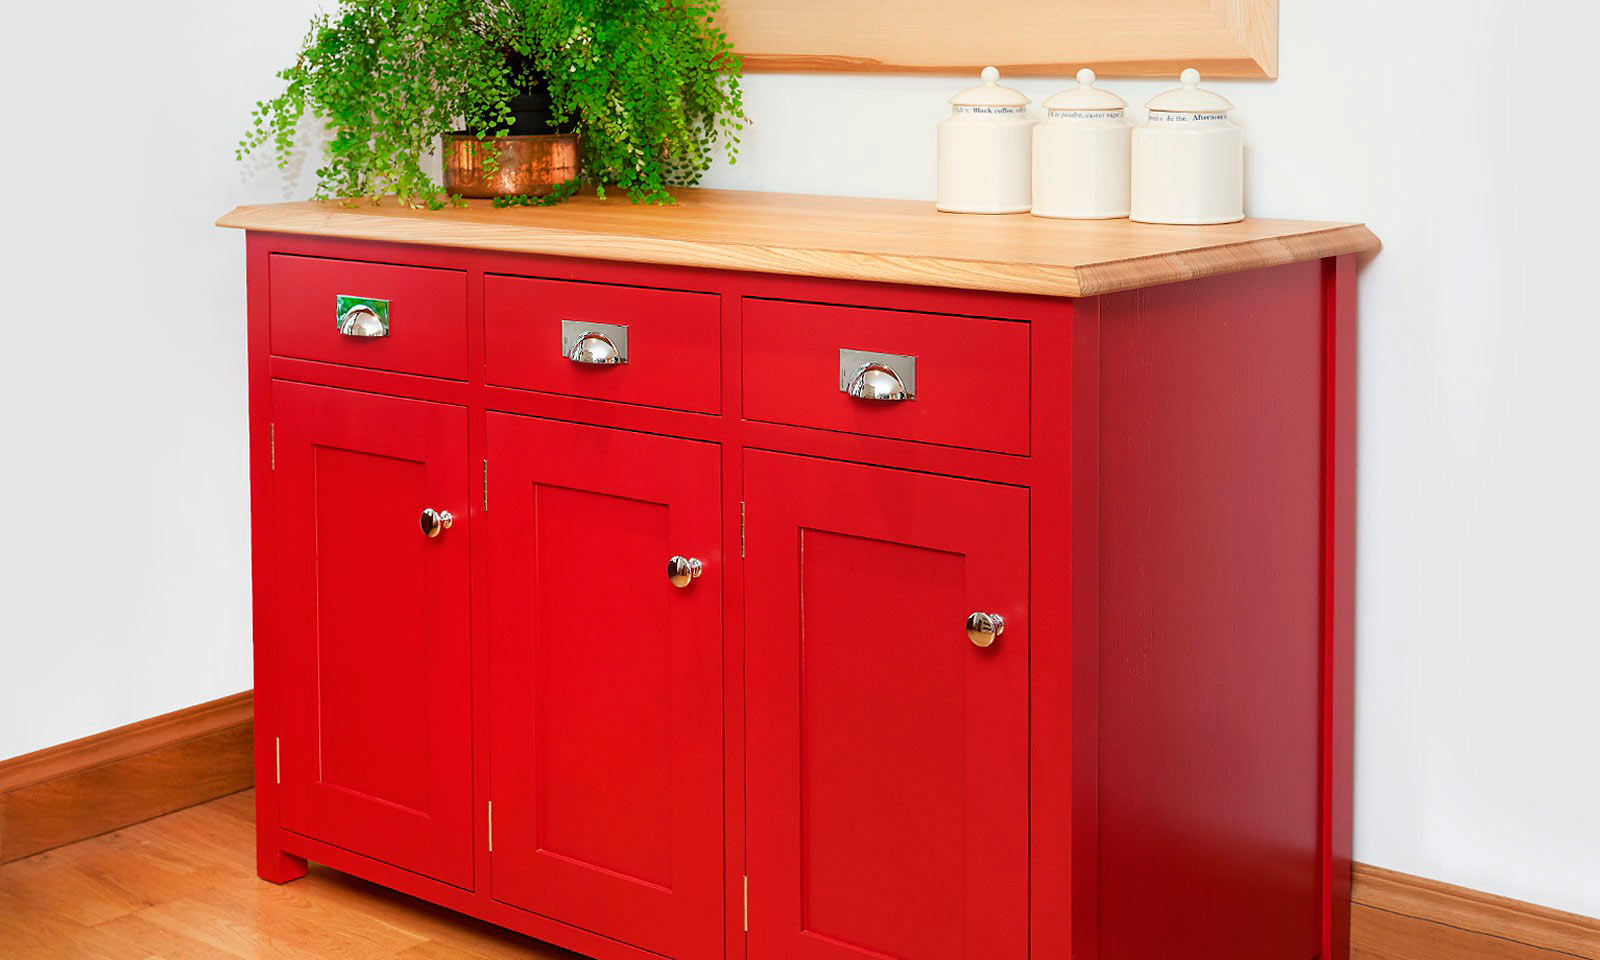 Scarlet Dresser. A bespoke, handmade, hand-painted traditional red dresser, for inclusion in a classic shaker style kitchen. Manufactured with an ash top and bright polished chrome cup handles, another future antique from Mounts Hill.